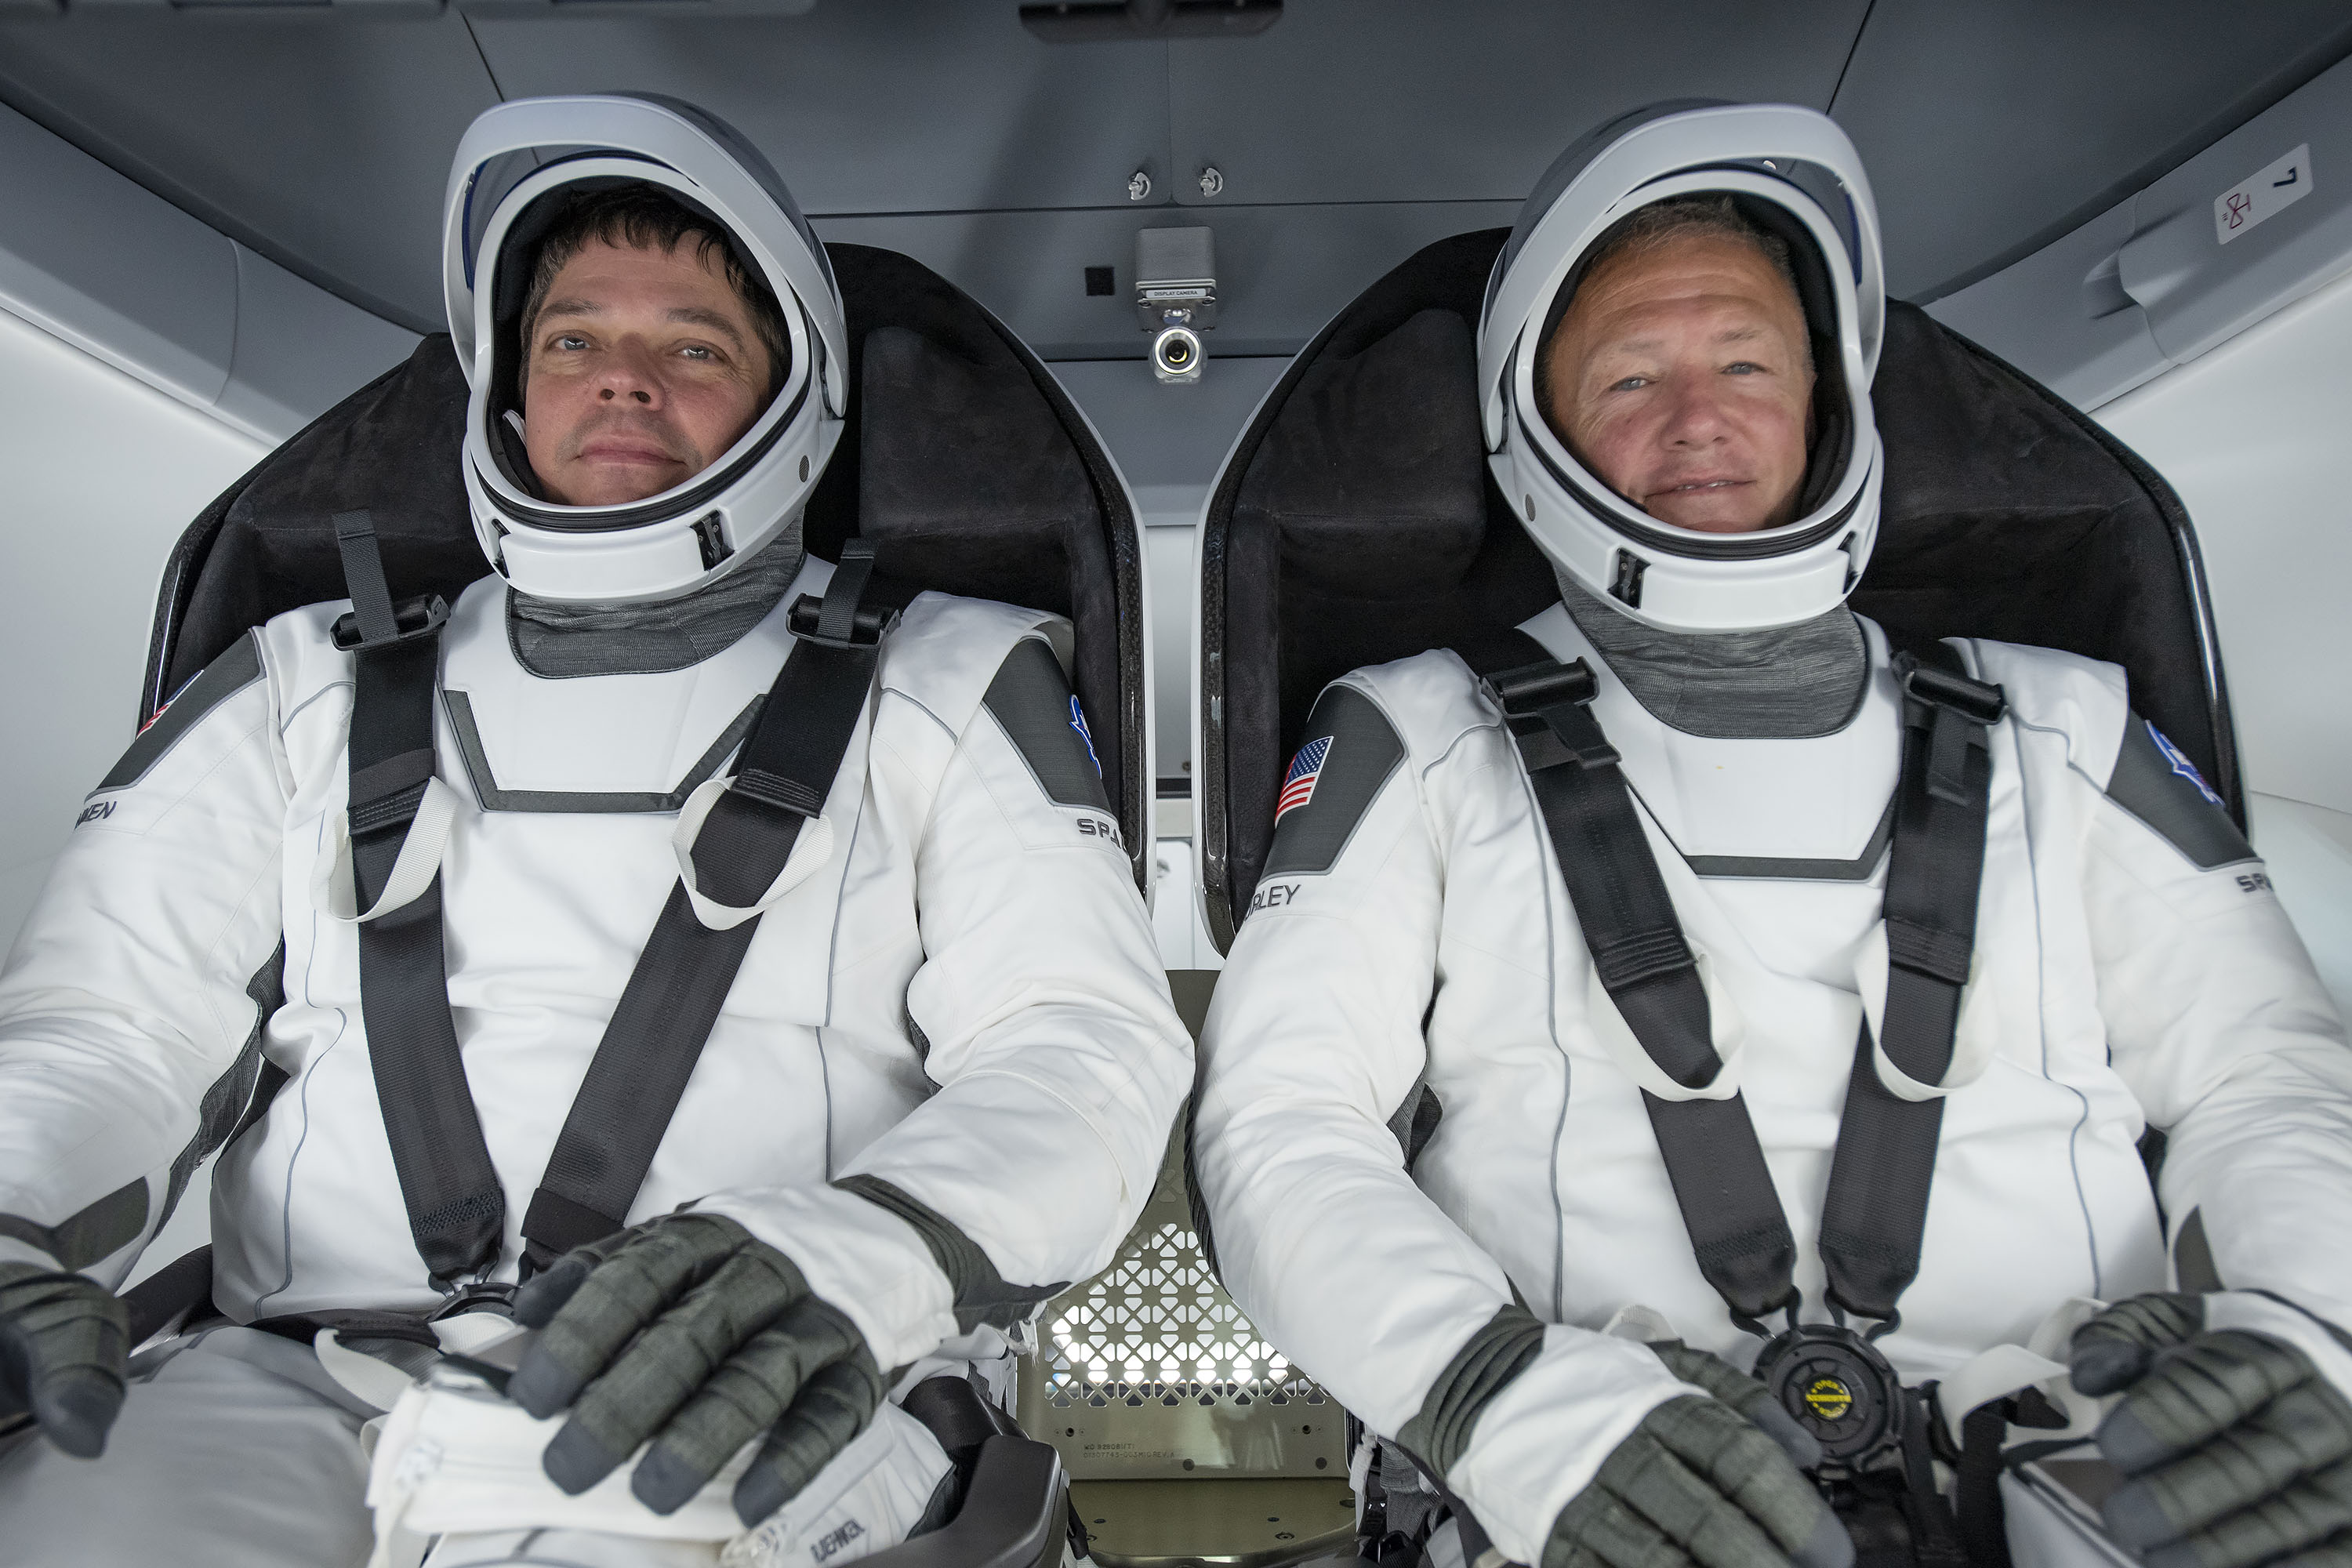 Nasa astronauts Bob Behnken and Doug Hurley